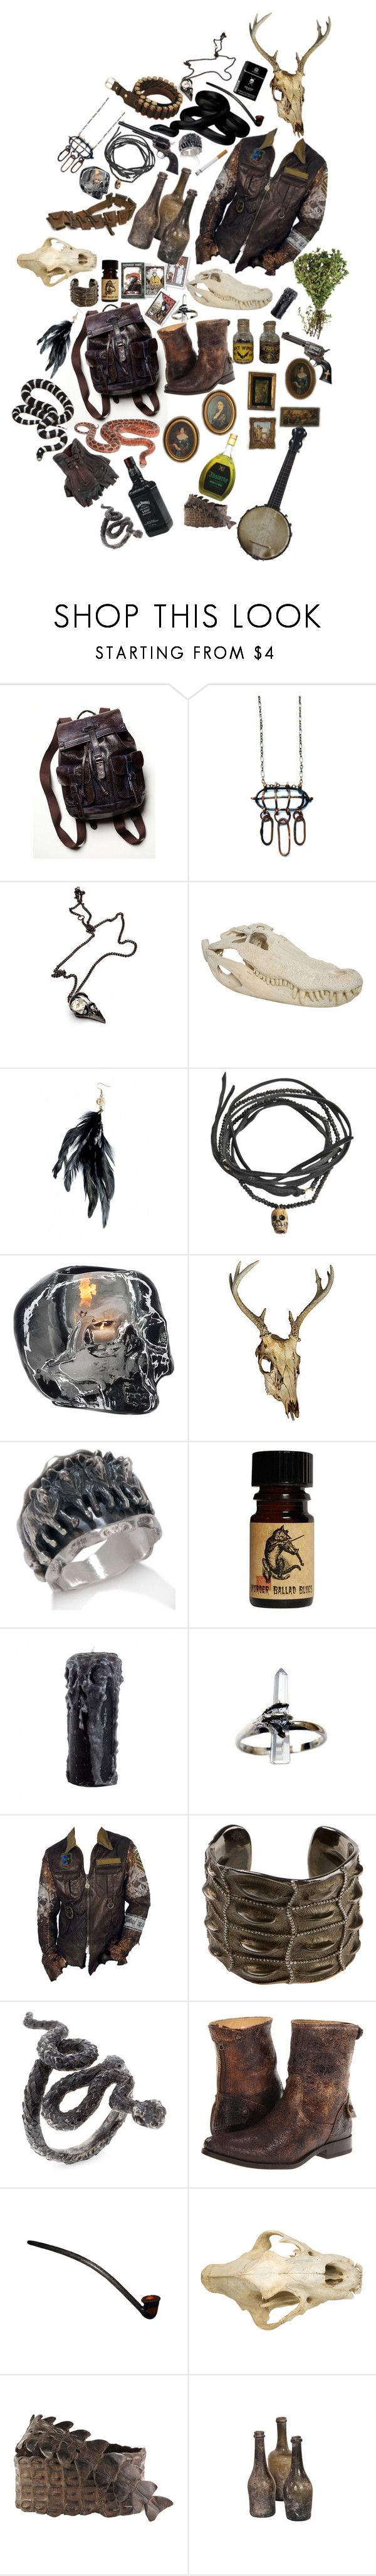 """""""The Hunter"""" by ambre-moon ❤ liked on Polyvore featuring Free People, Alkemie, Pascale Monvoisin, Kosta Boda, Chaco, Lynn Ban, 3:10, Frye, Jayson Home and Fausto Colato"""